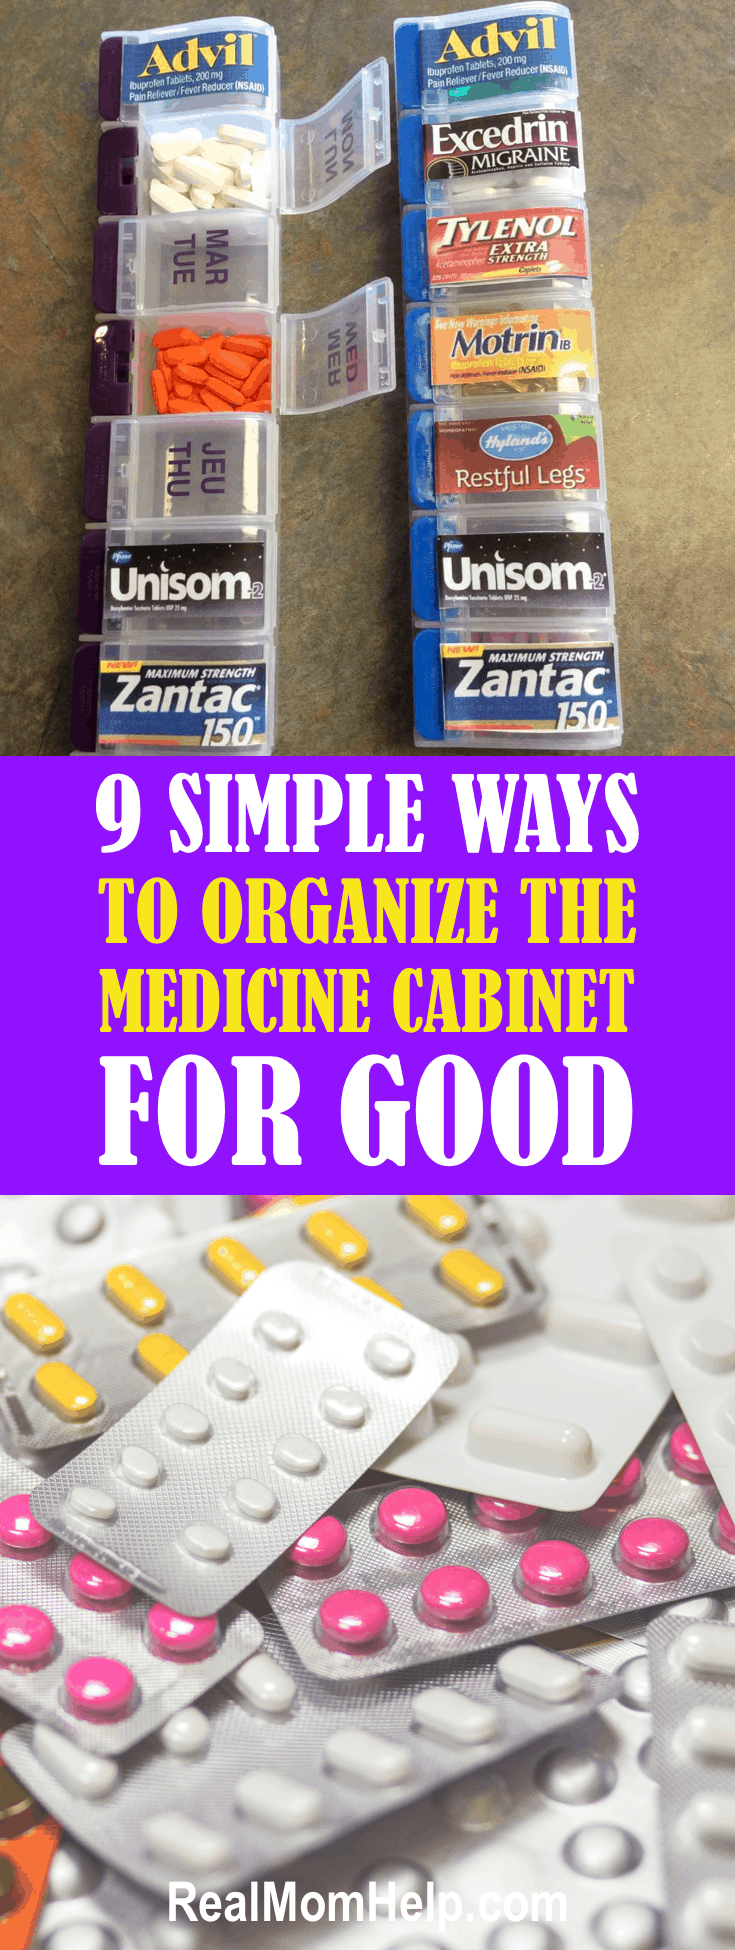 9 Simple Ways To Organize The Medicine Cabinet For Good